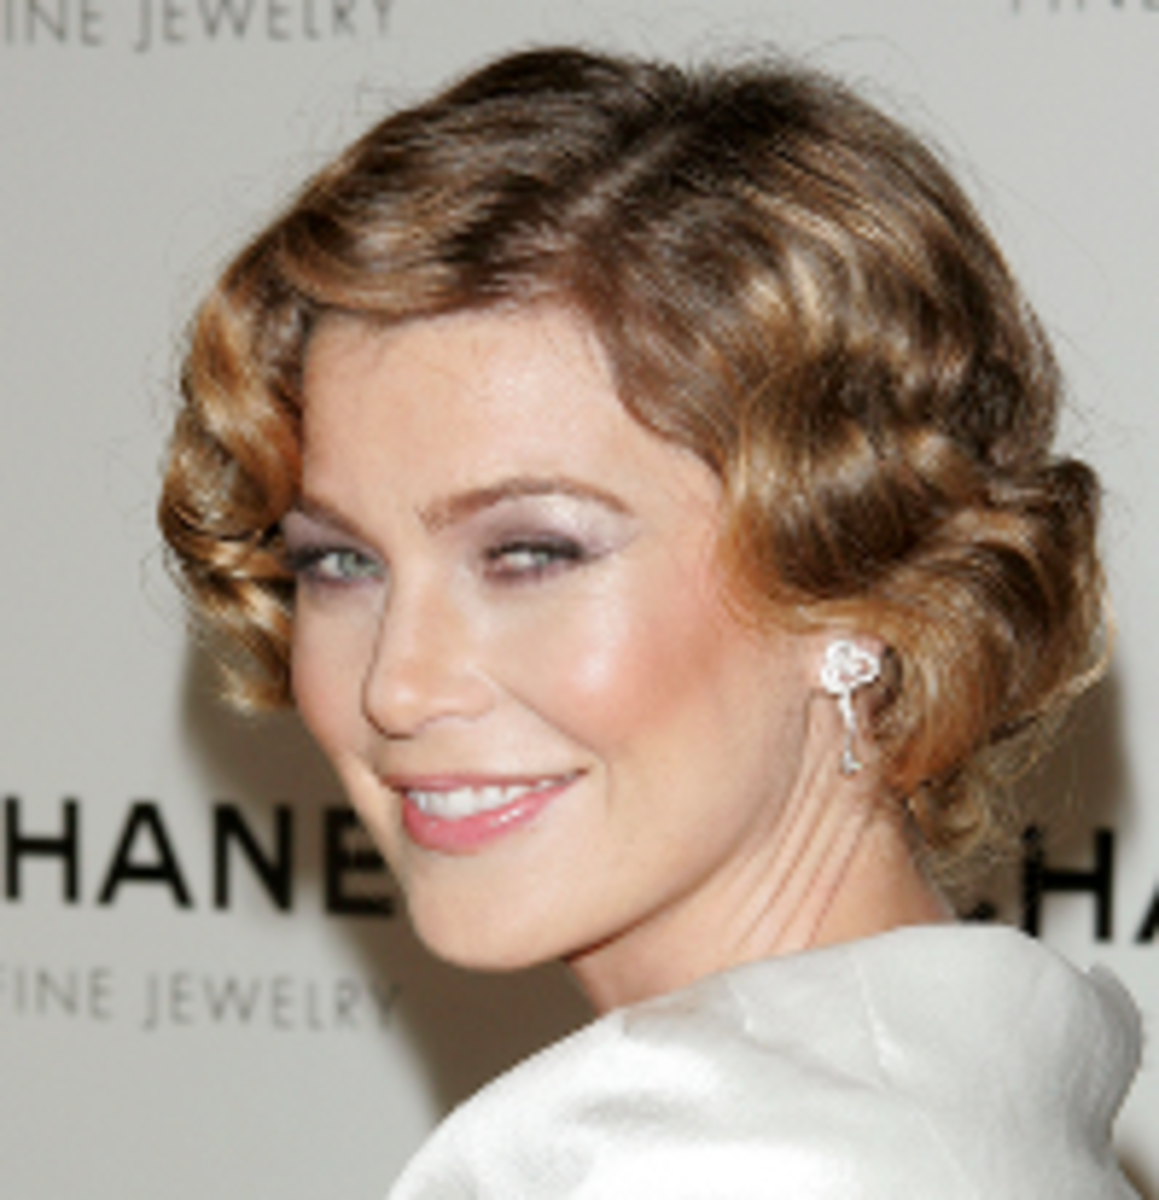 The finger wave hairstyle for short hair.